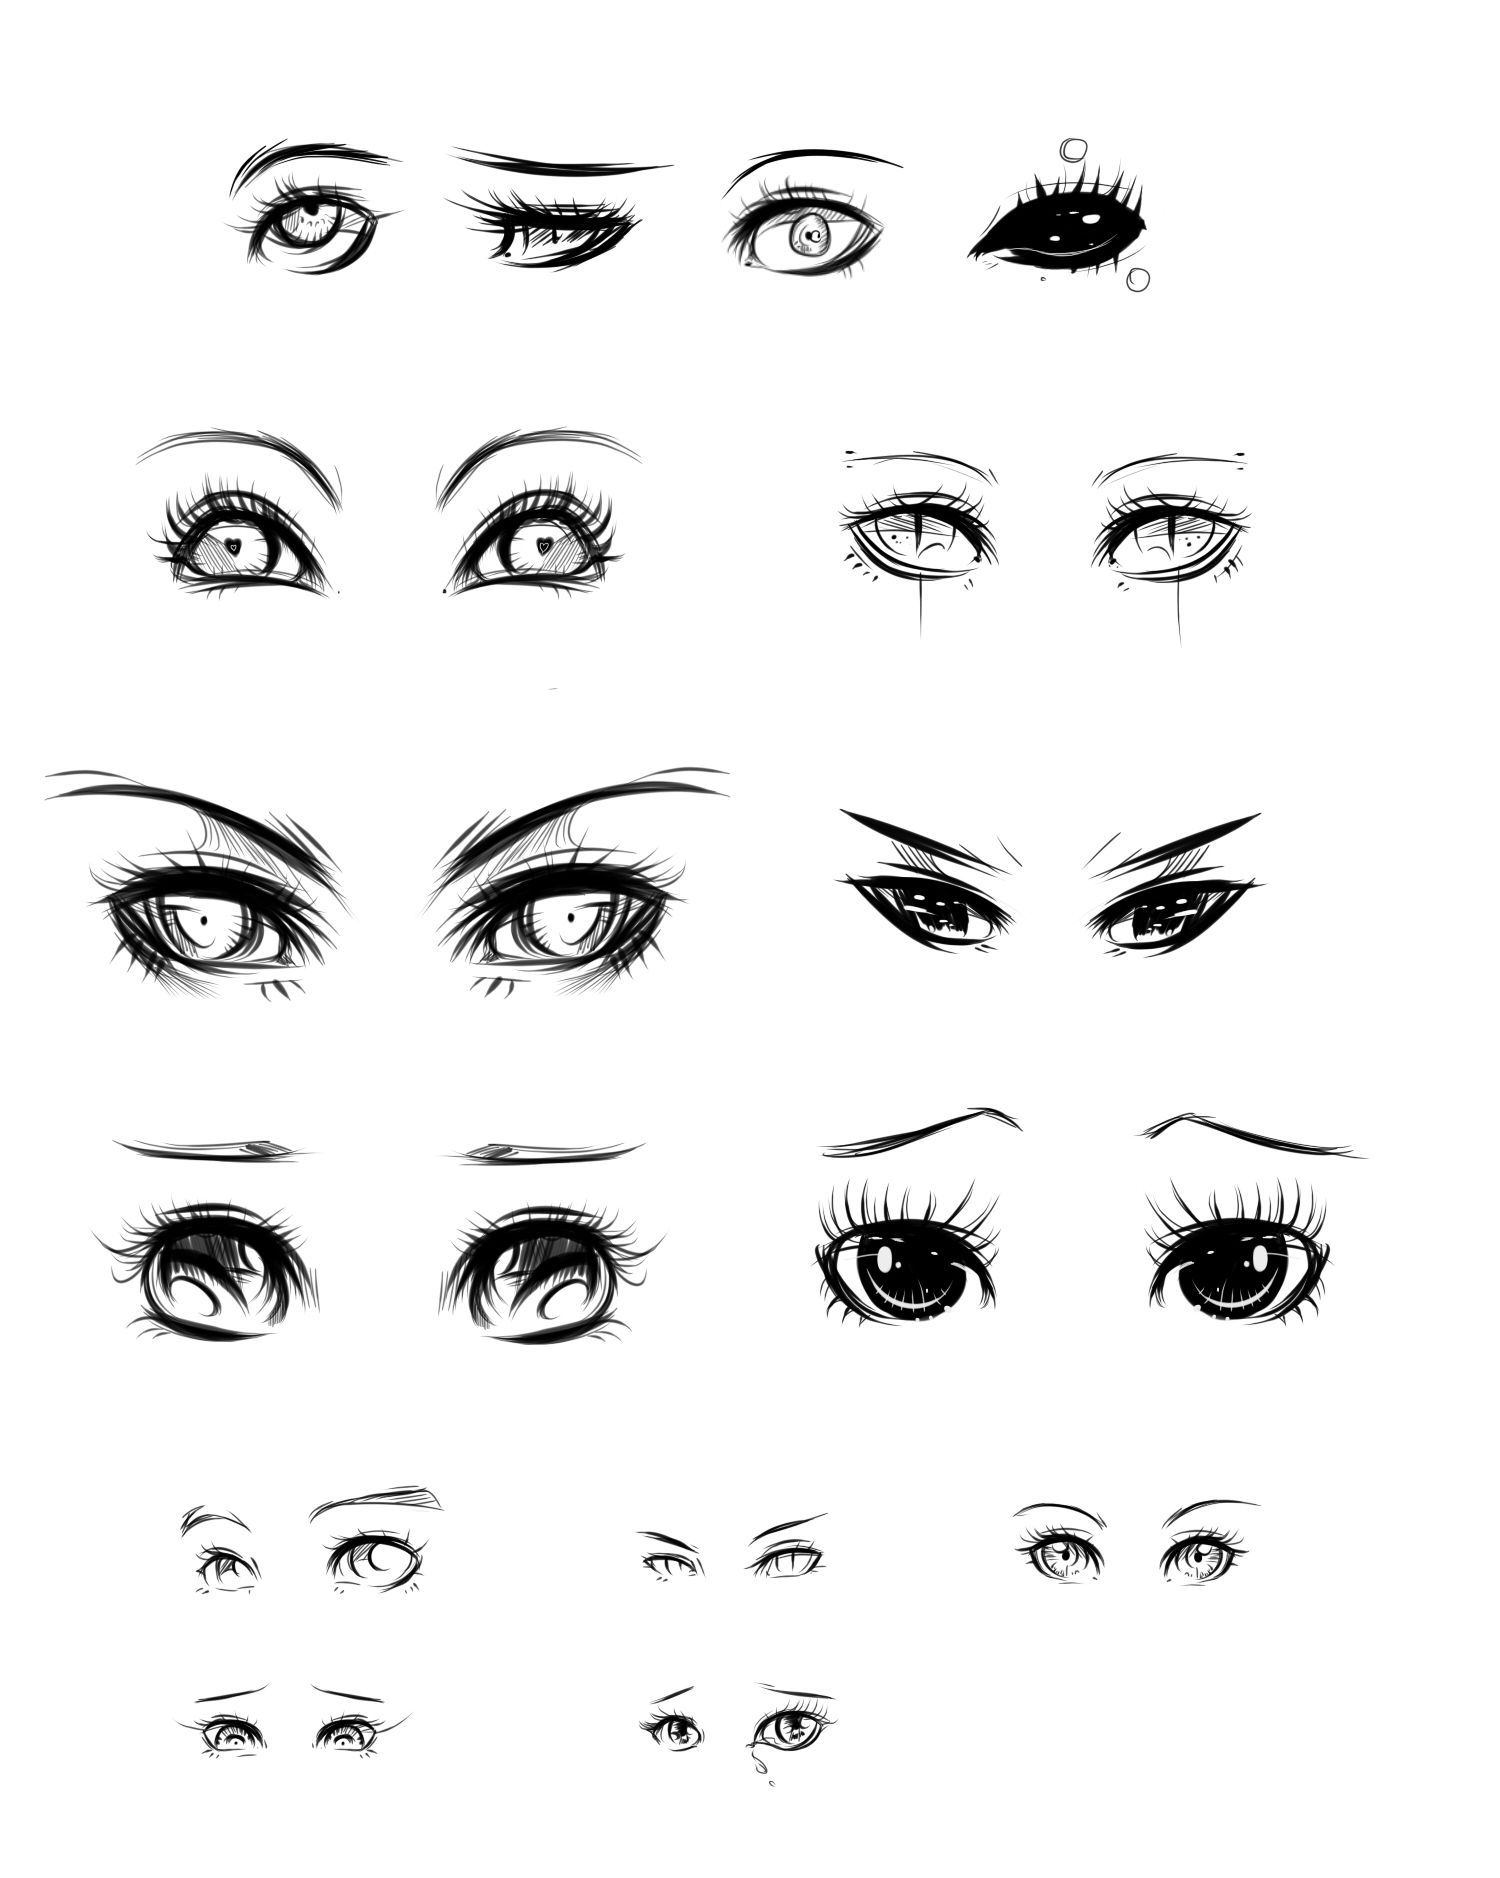 Pin by Cruz Gonzalez on art tips Anime eyes, Eye drawing